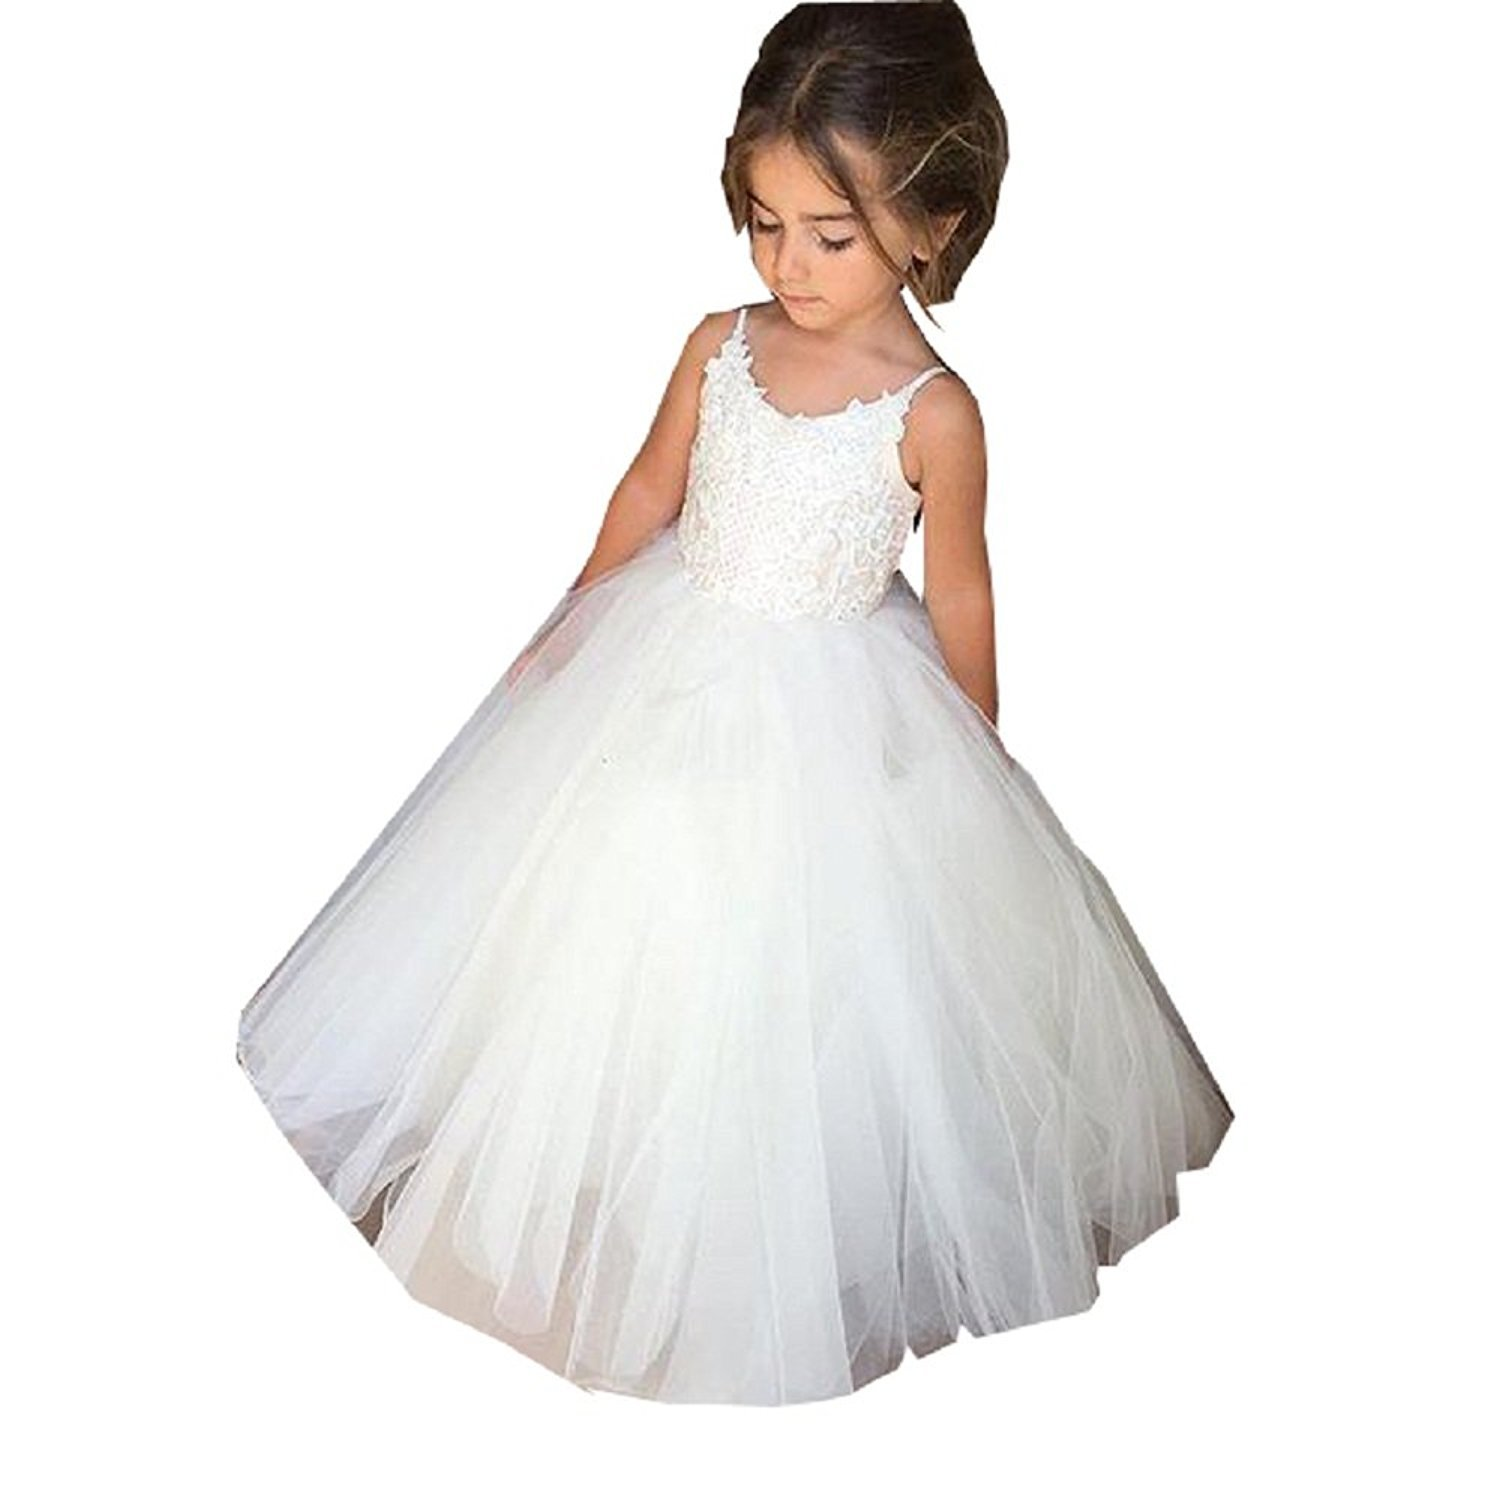 PLwedding Flower Girls Lace Tulle Ball Gowns First Communion Dresses Size 4 White by PLwedding